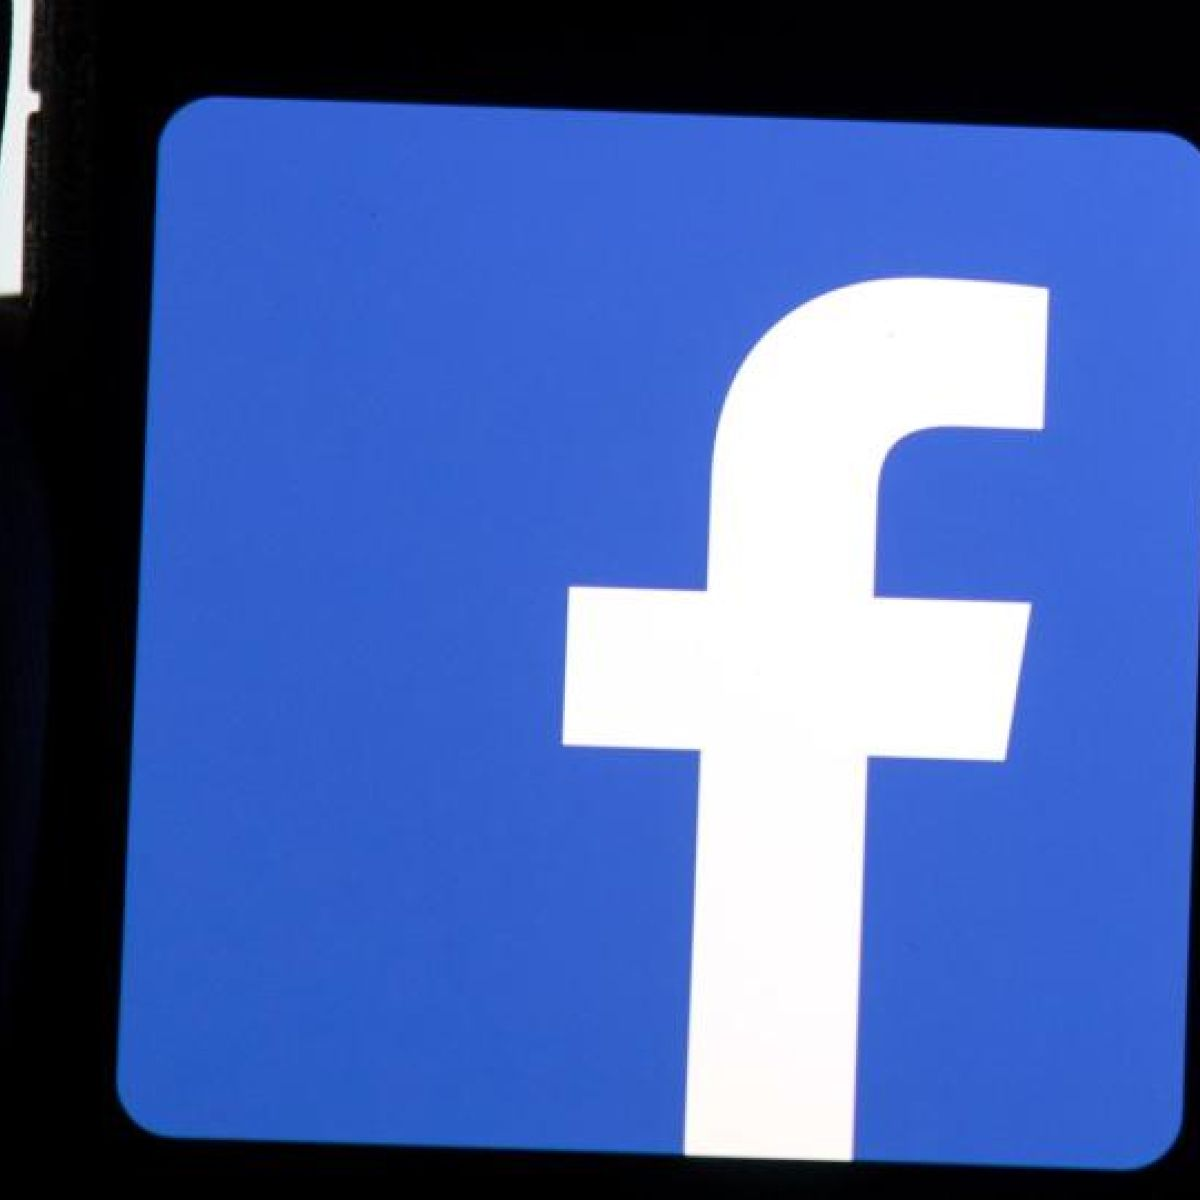 Supreme Court to hear Facebook appeal over data transfers